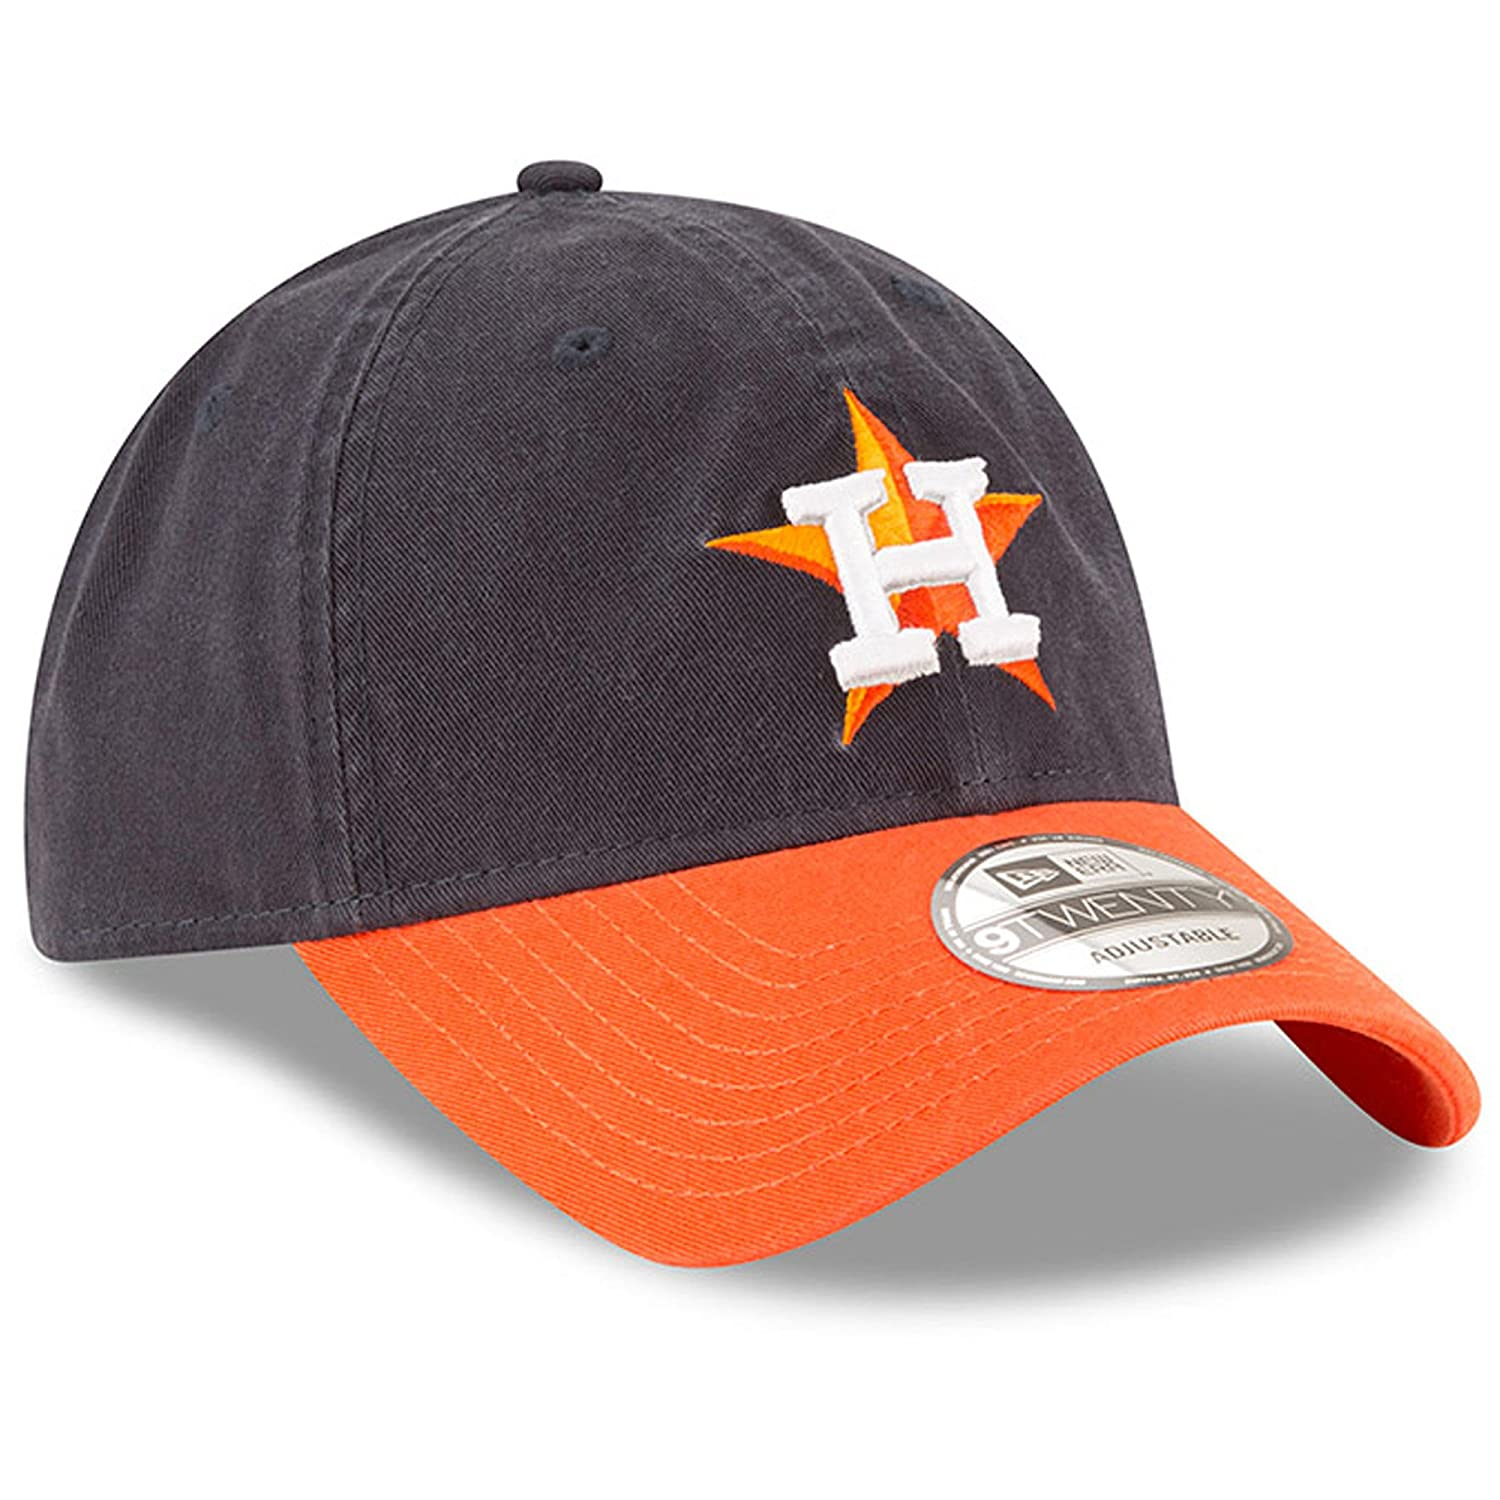 Houston Astros New Era Road Replica Core Classic 9Twenty Verstellbar Hat Navy//Orange